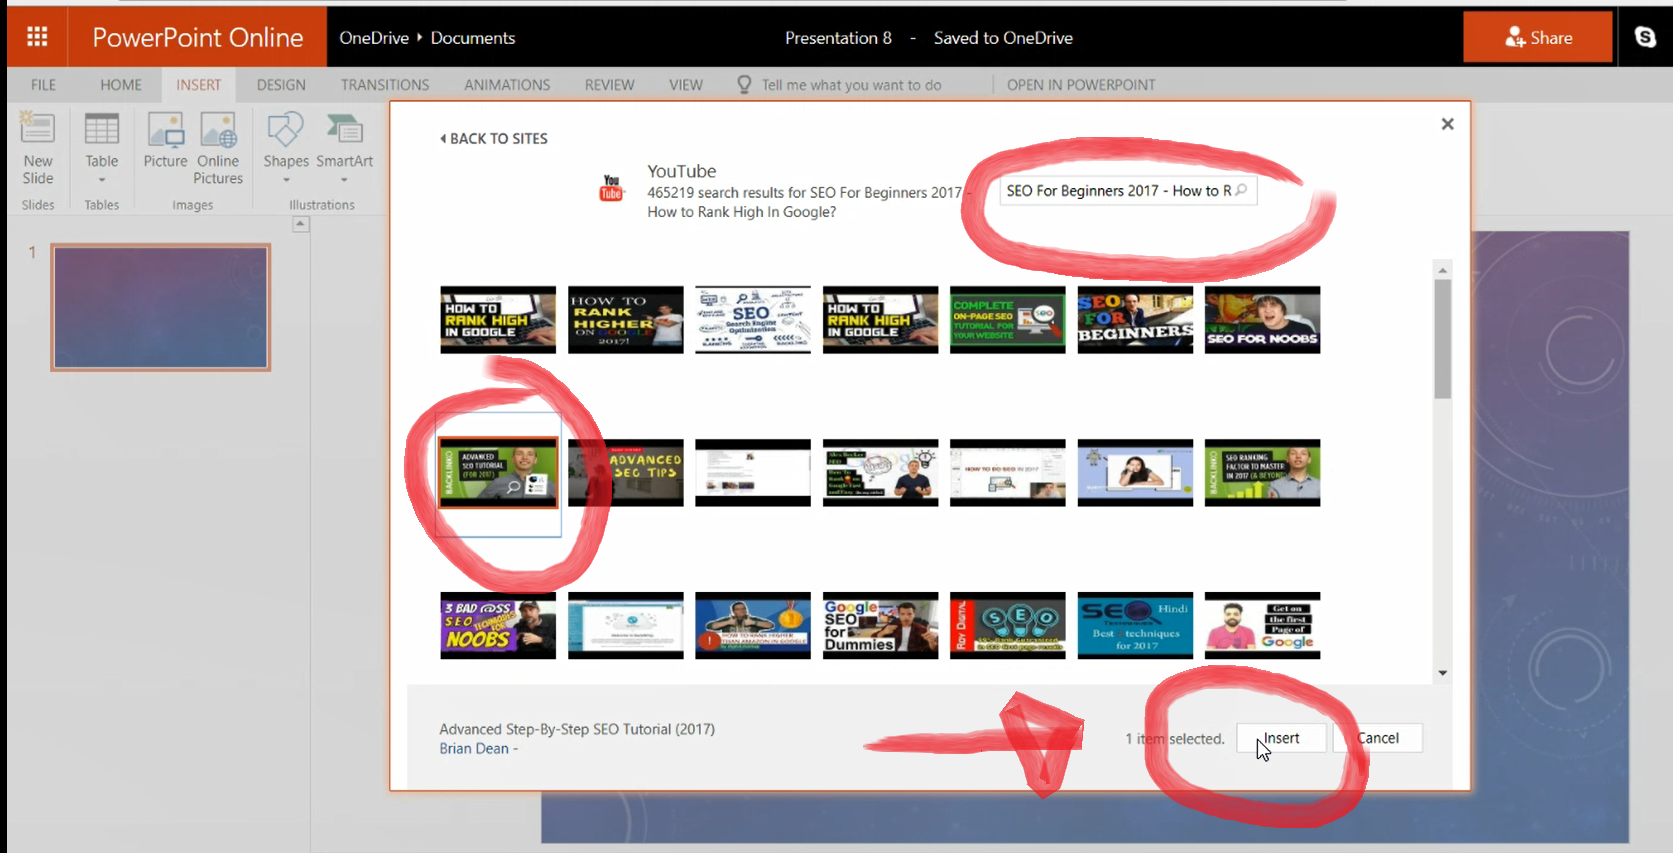 Preview The YouTube Video On PowerPoint Presentation